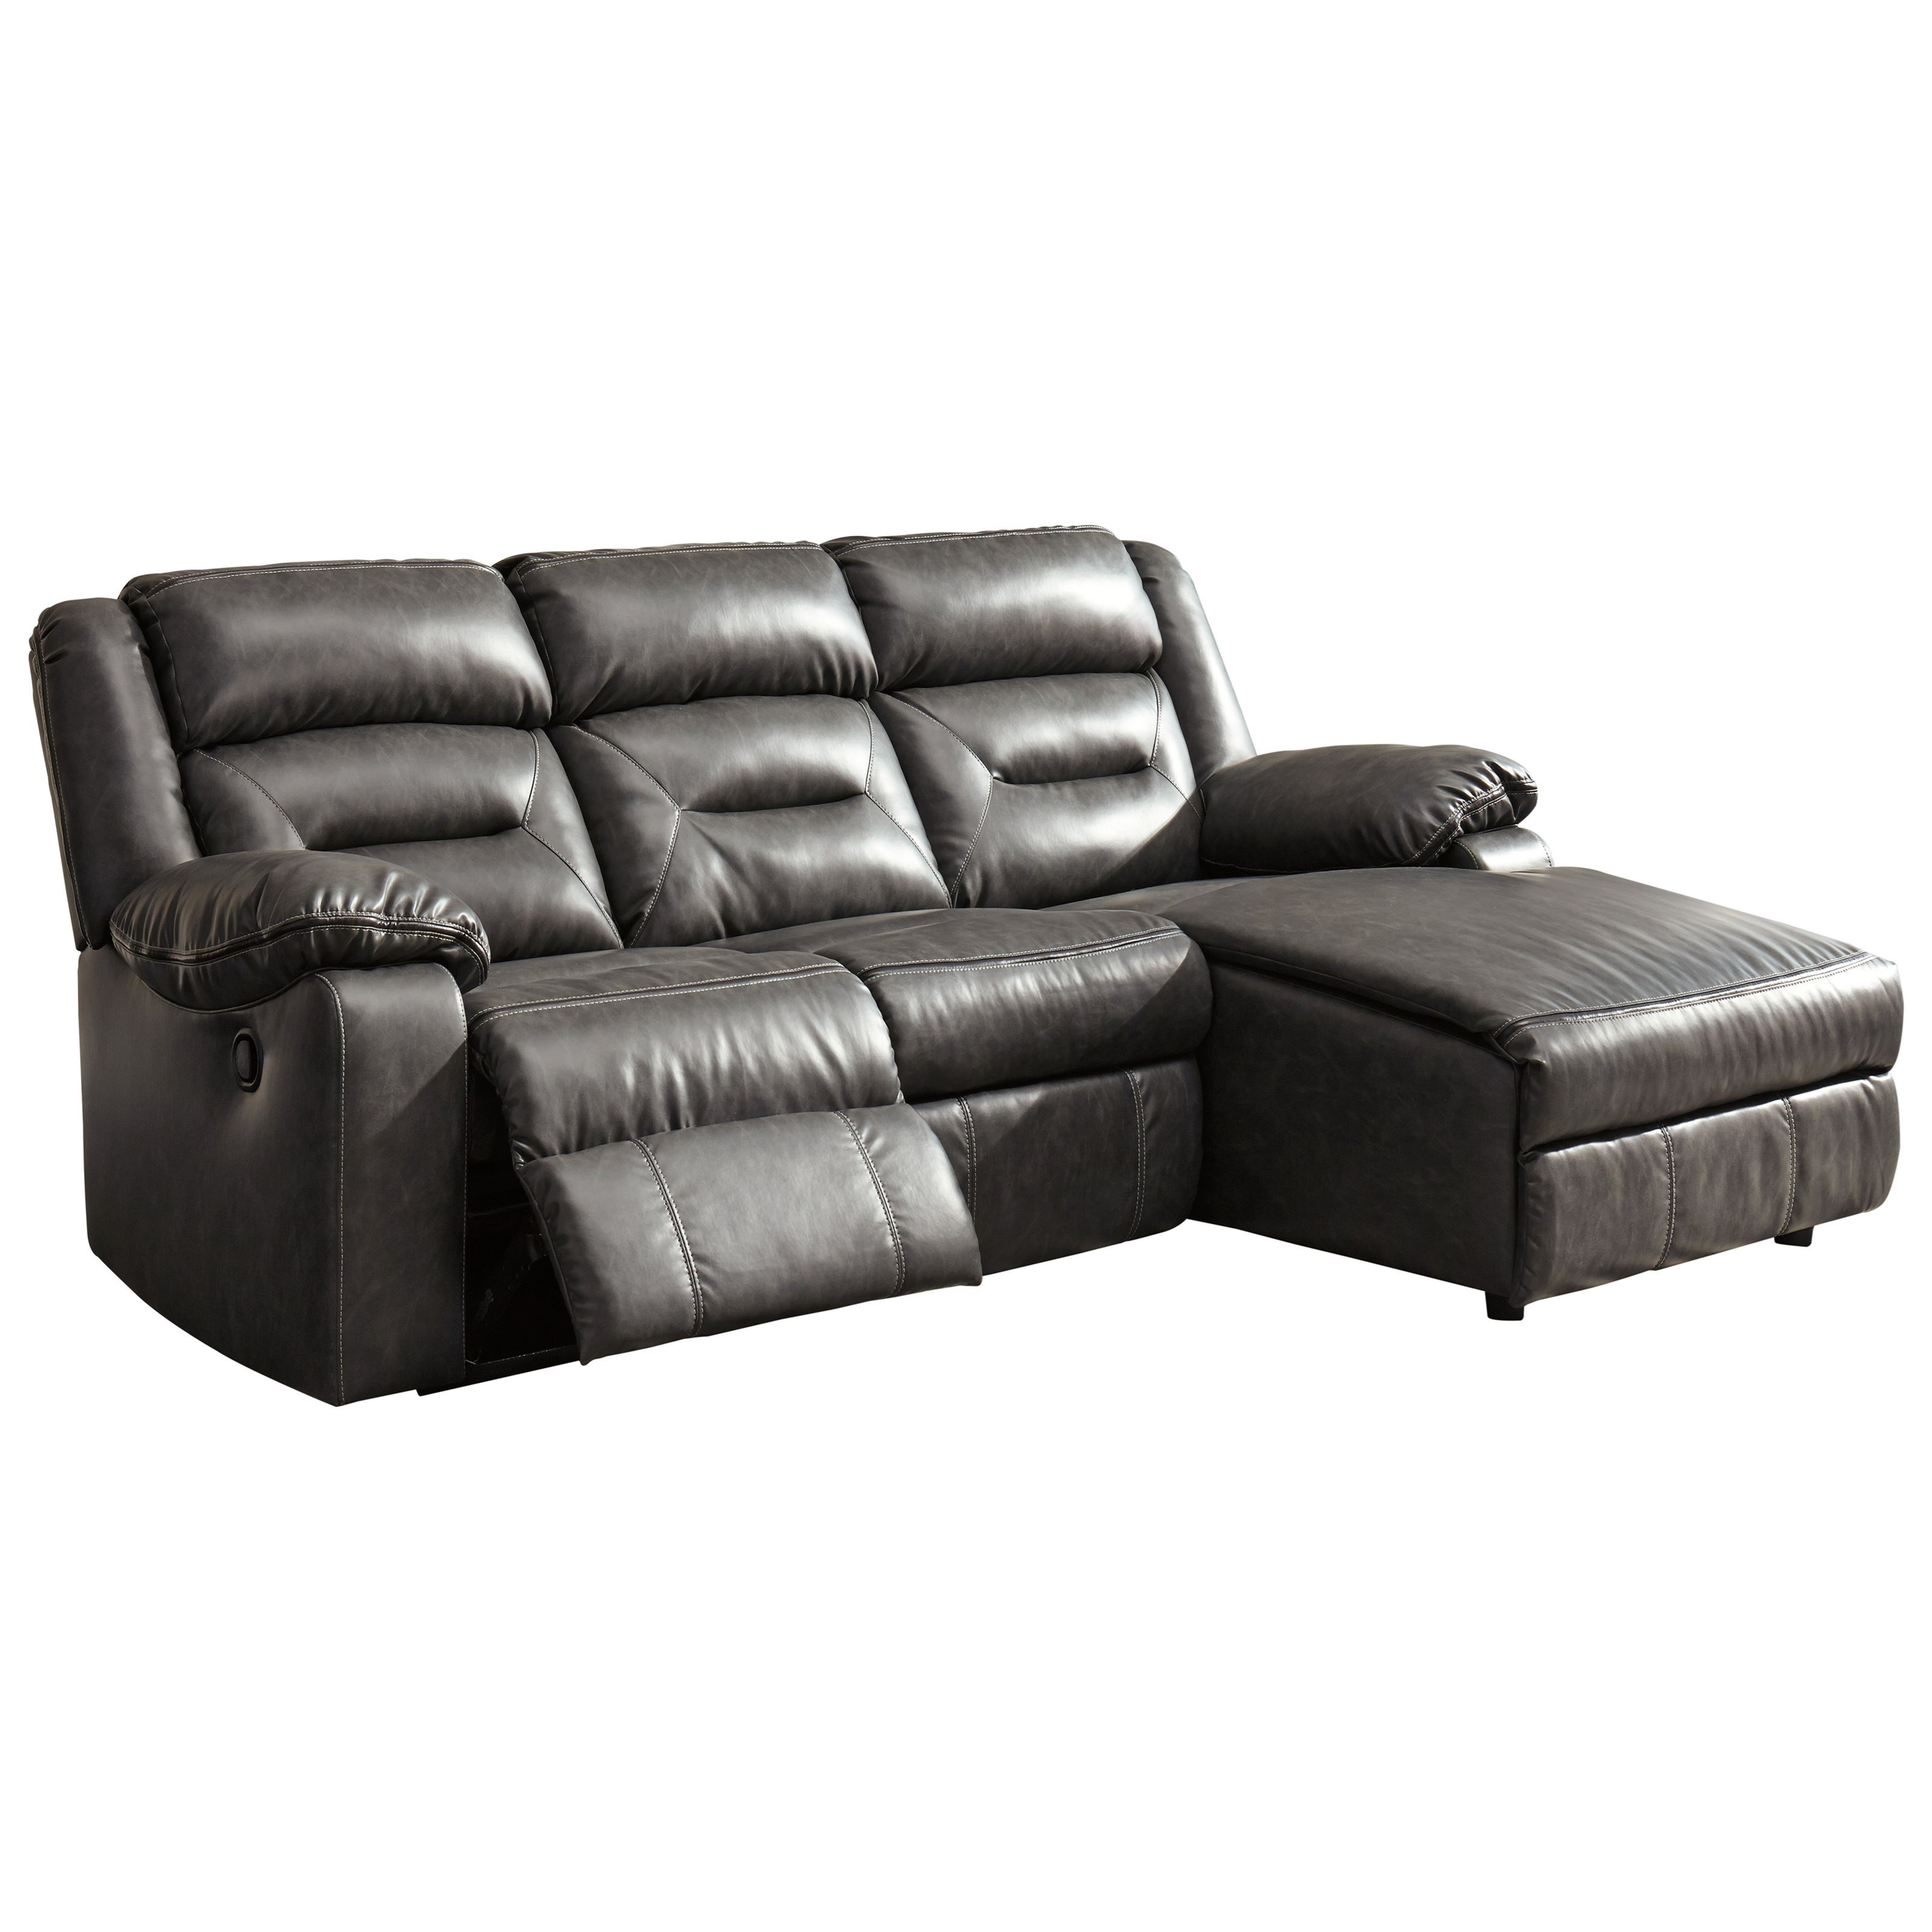 Calvin 3-Piece Sectional Sofa with Chaise | Ruby Gordon Home ...